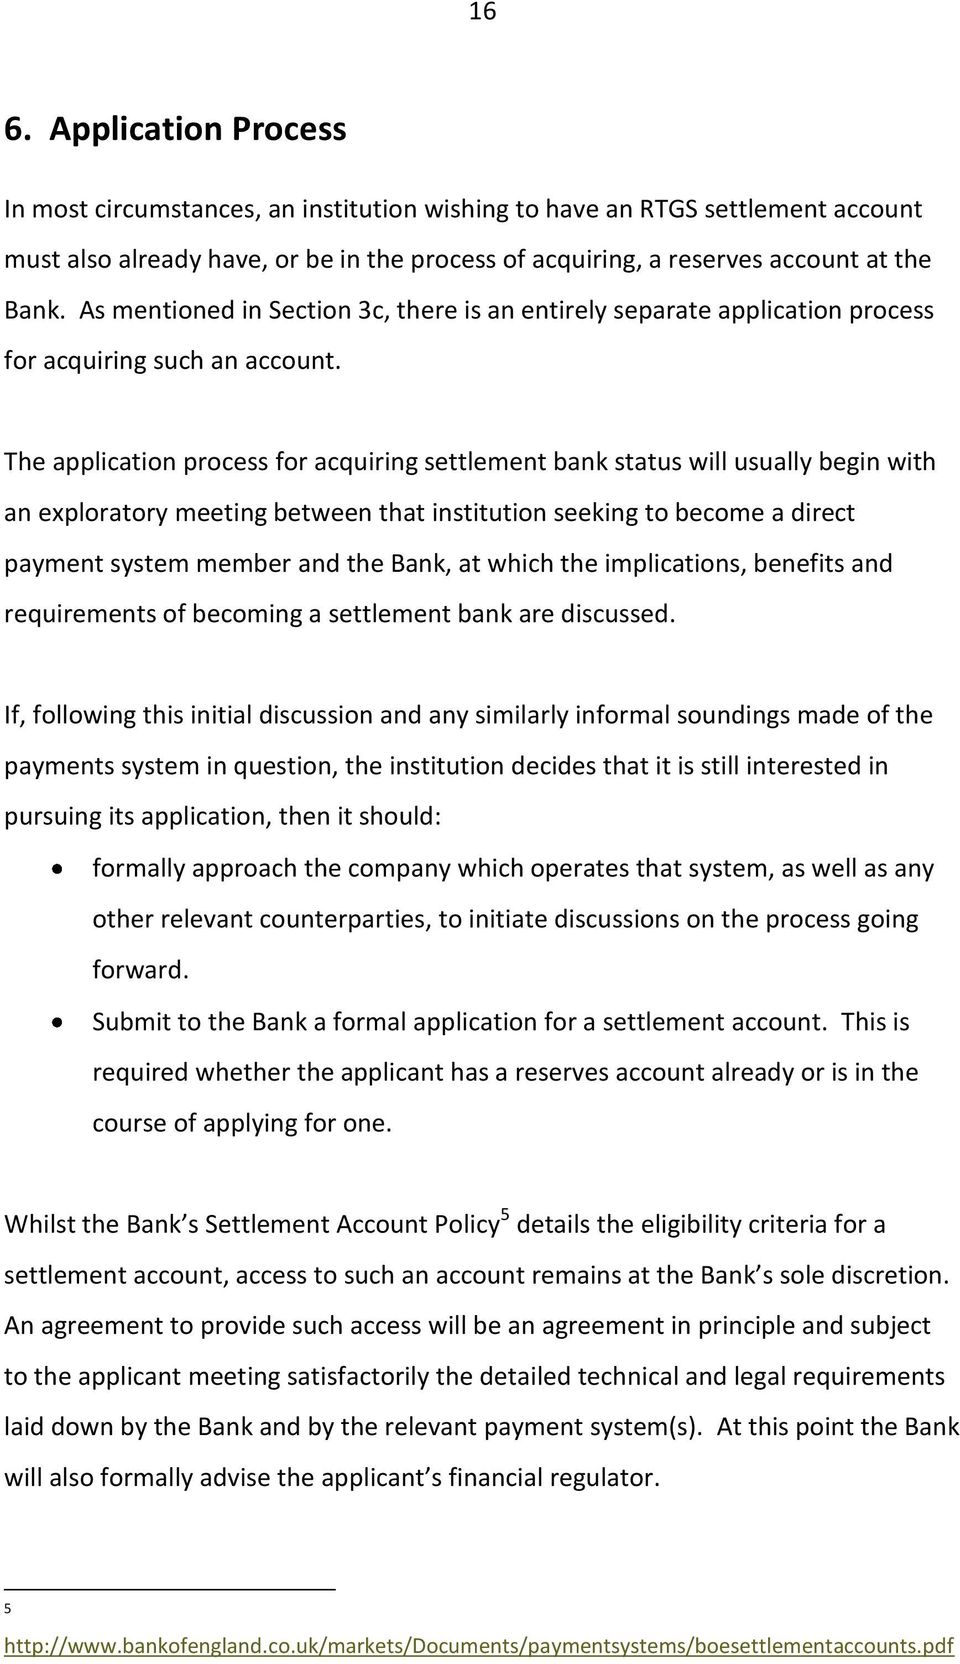 The application process for acquiring settlement bank status will usually begin with an exploratory meeting between that institution seeking to become a direct payment system member and the Bank, at